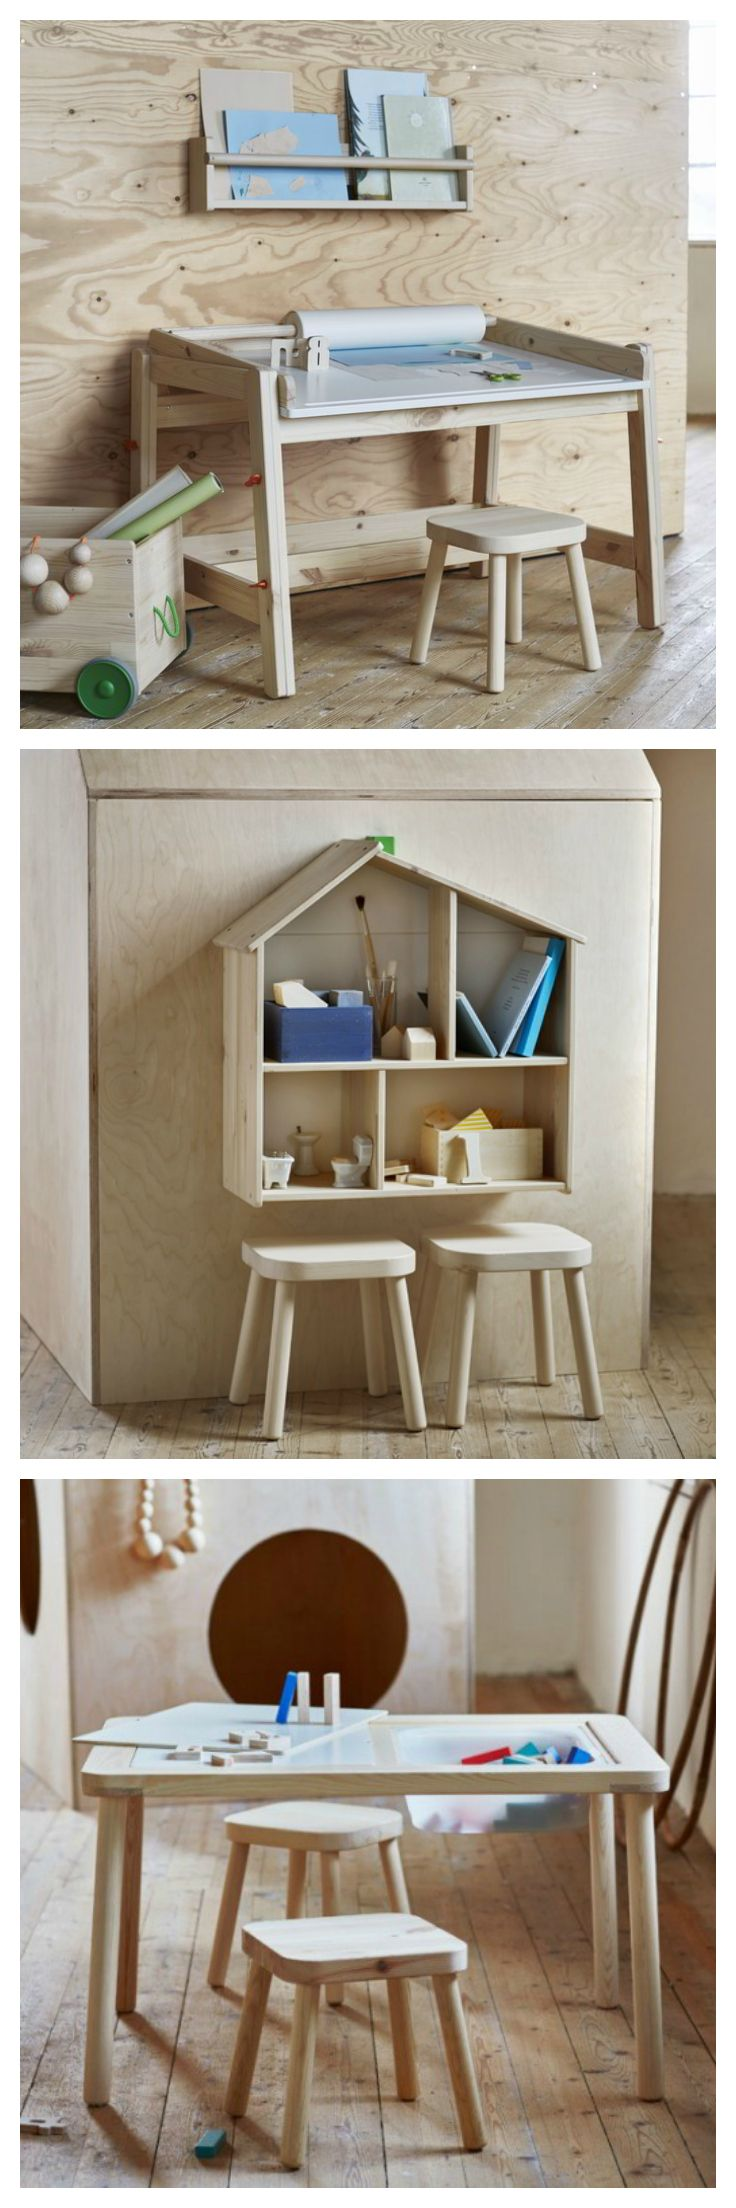 Clean lines and Scandinavian vibes   Ikea Children s furniture   perfect  for a playroom. Best 25  Children furniture ideas on Pinterest   Kids furniture